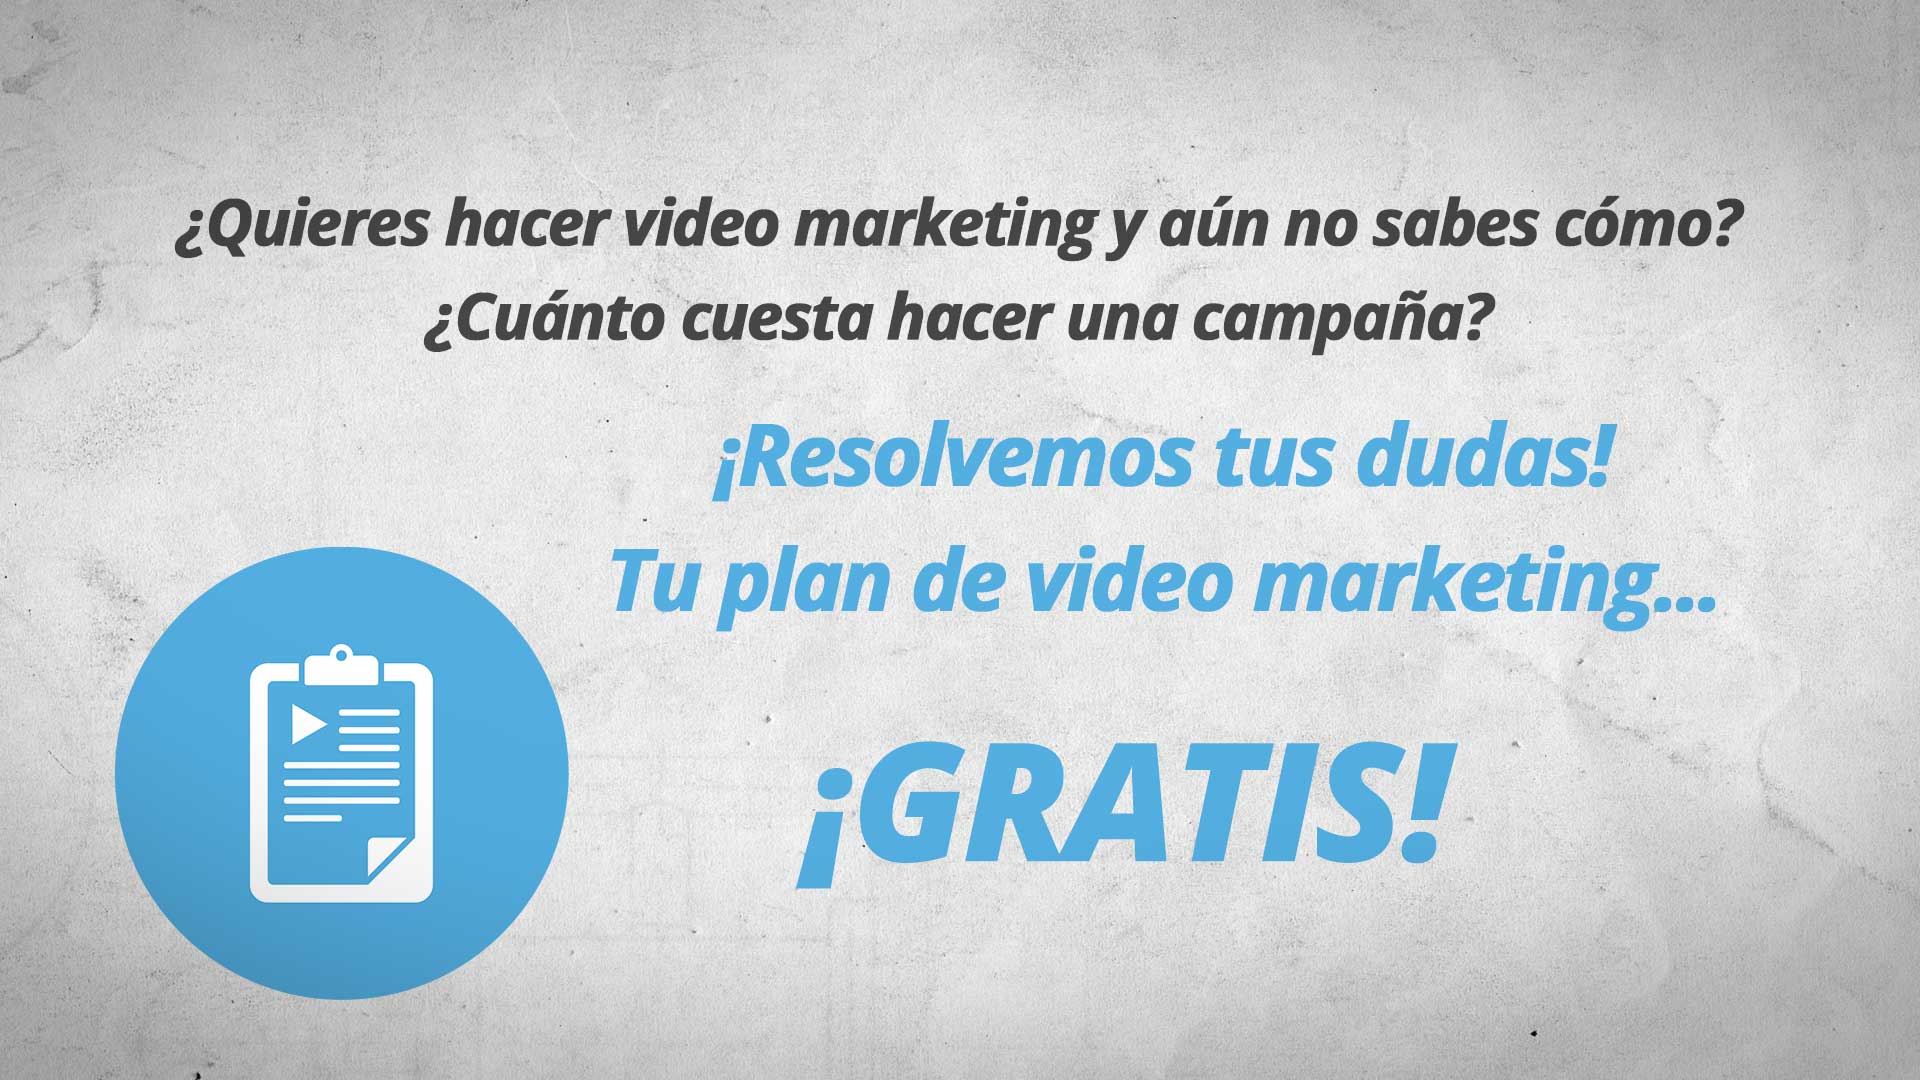 Elaboramos tu plan de video marketing…¡GRATIS!